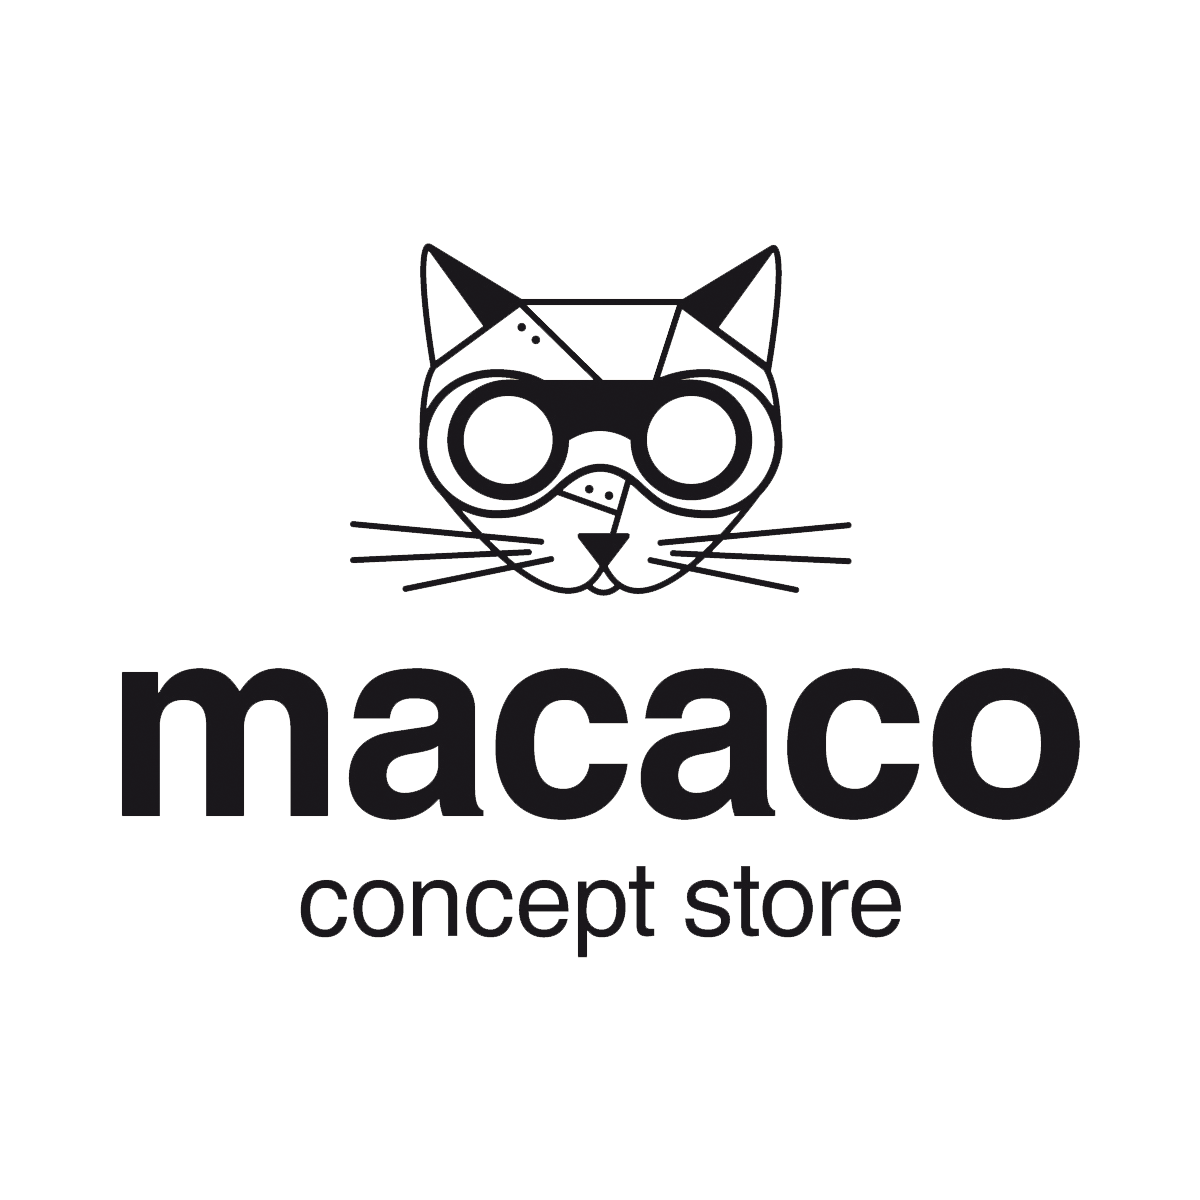 Macaco Concept Store